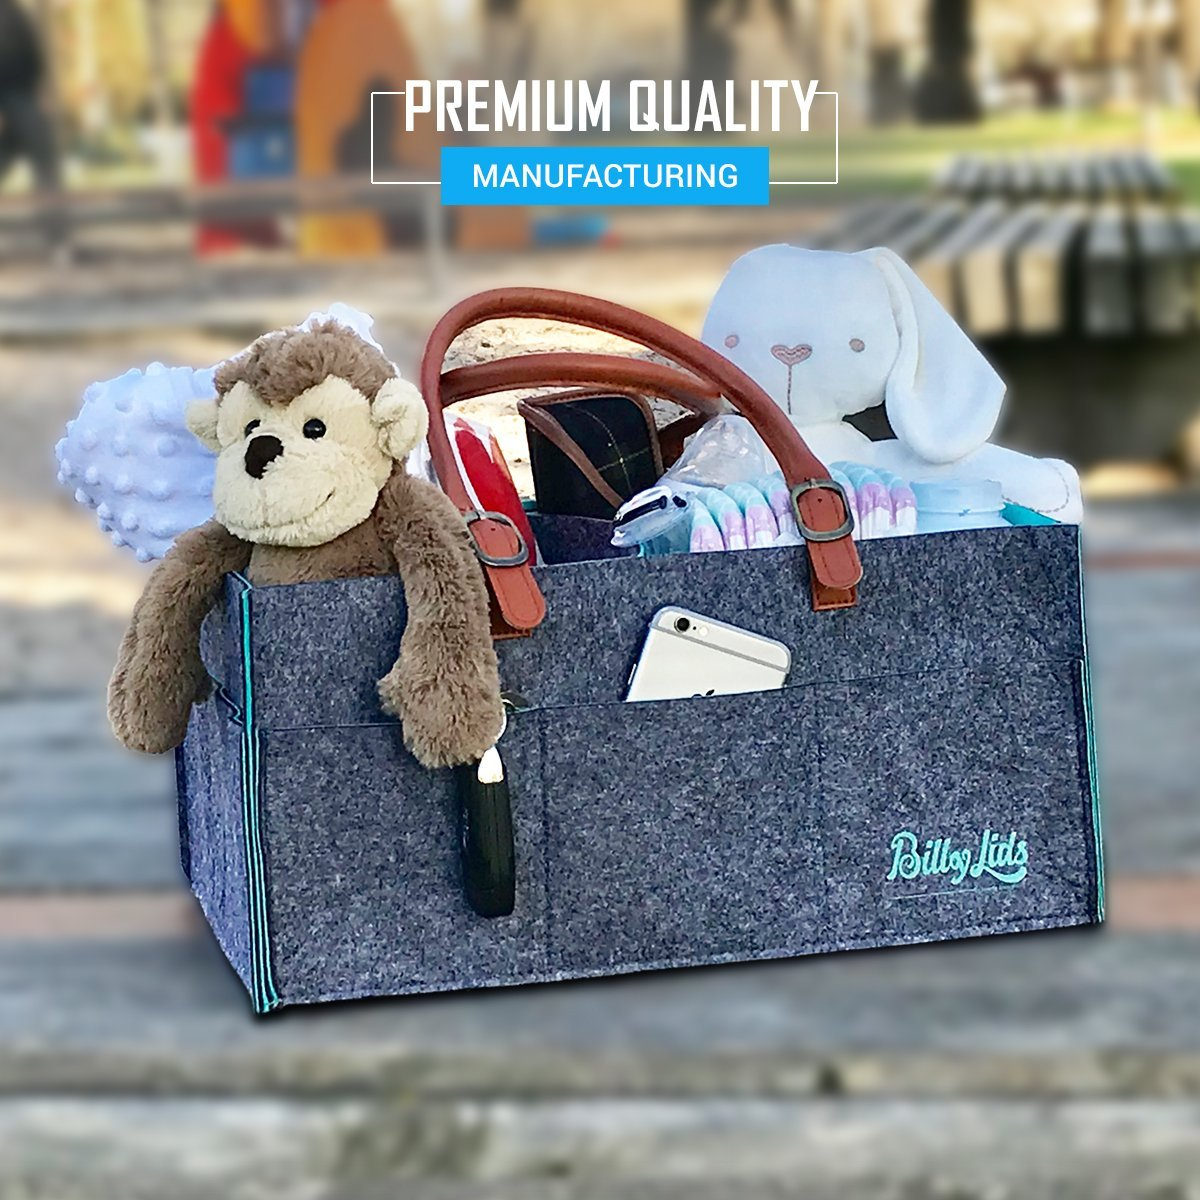 Baby Diaper Caddy Organizer and Stacker - Premium Quality - Baby Shower Gift Basket for Boy and Girl - Newborn Registry Must Haves - Nursery décor by Billy Lids (Image #2)